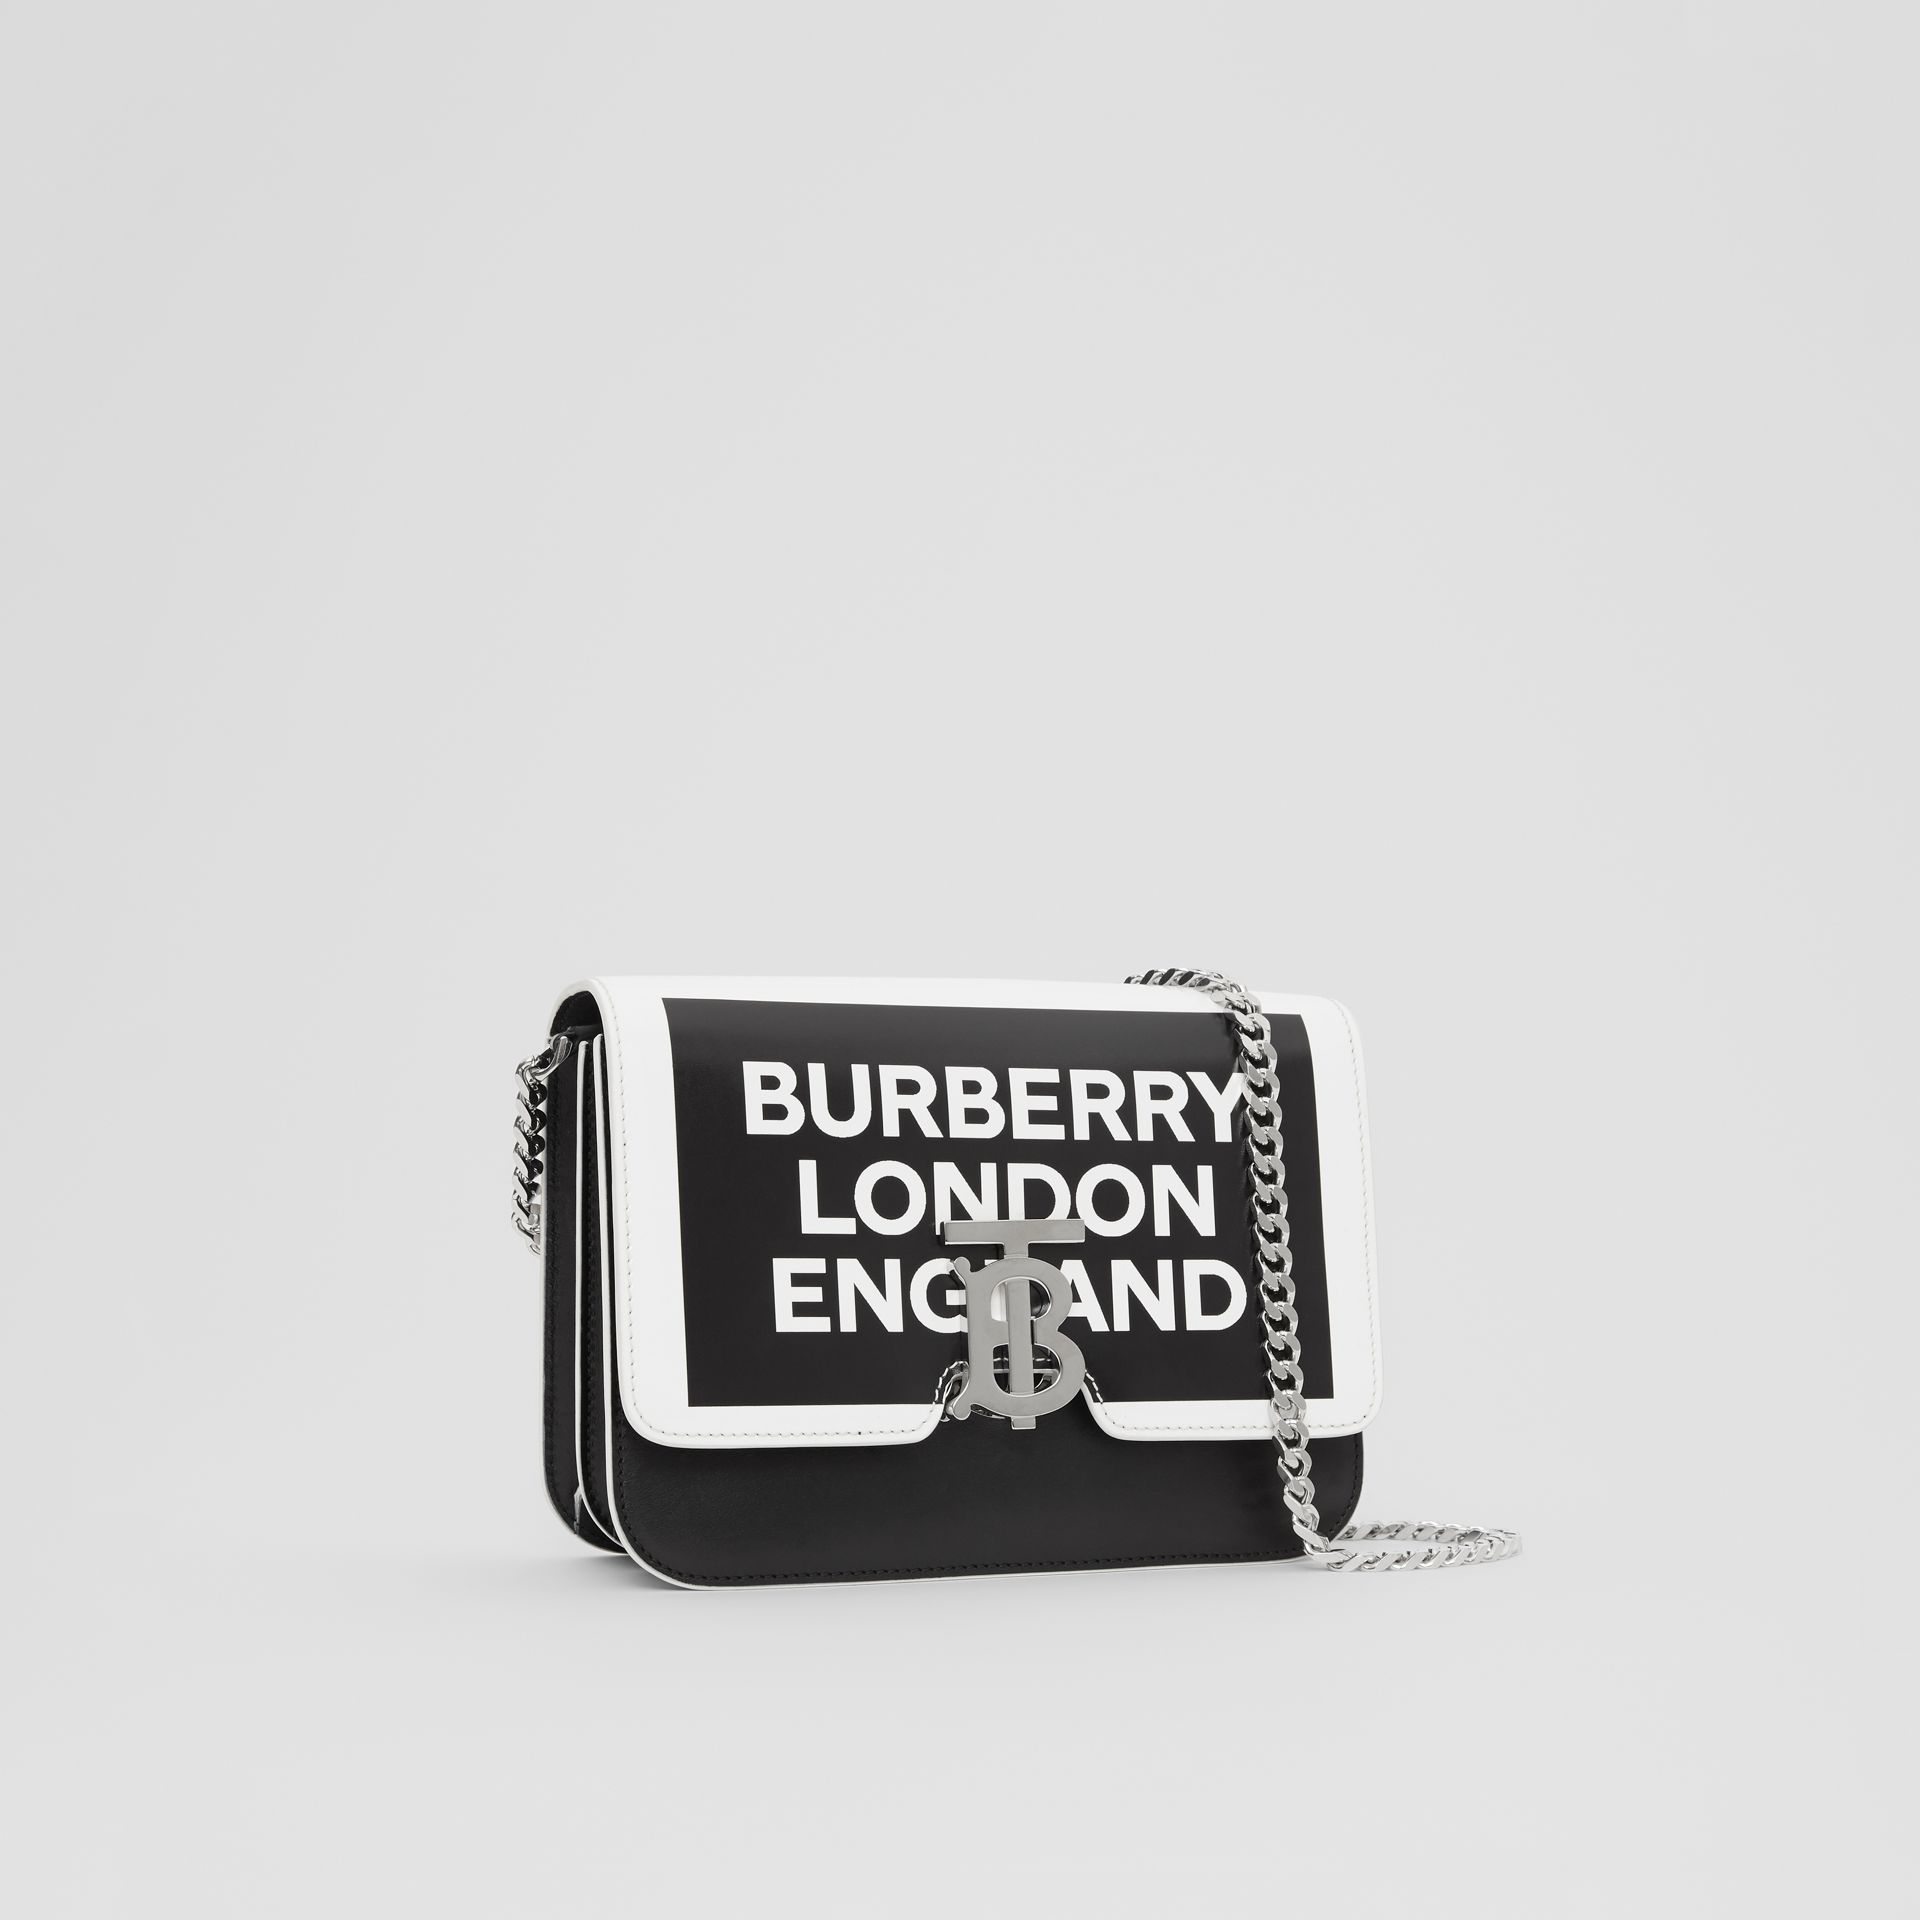 Small Logo Print Leather TB Bag in Black/white - Women | Burberry United Kingdom - gallery image 6